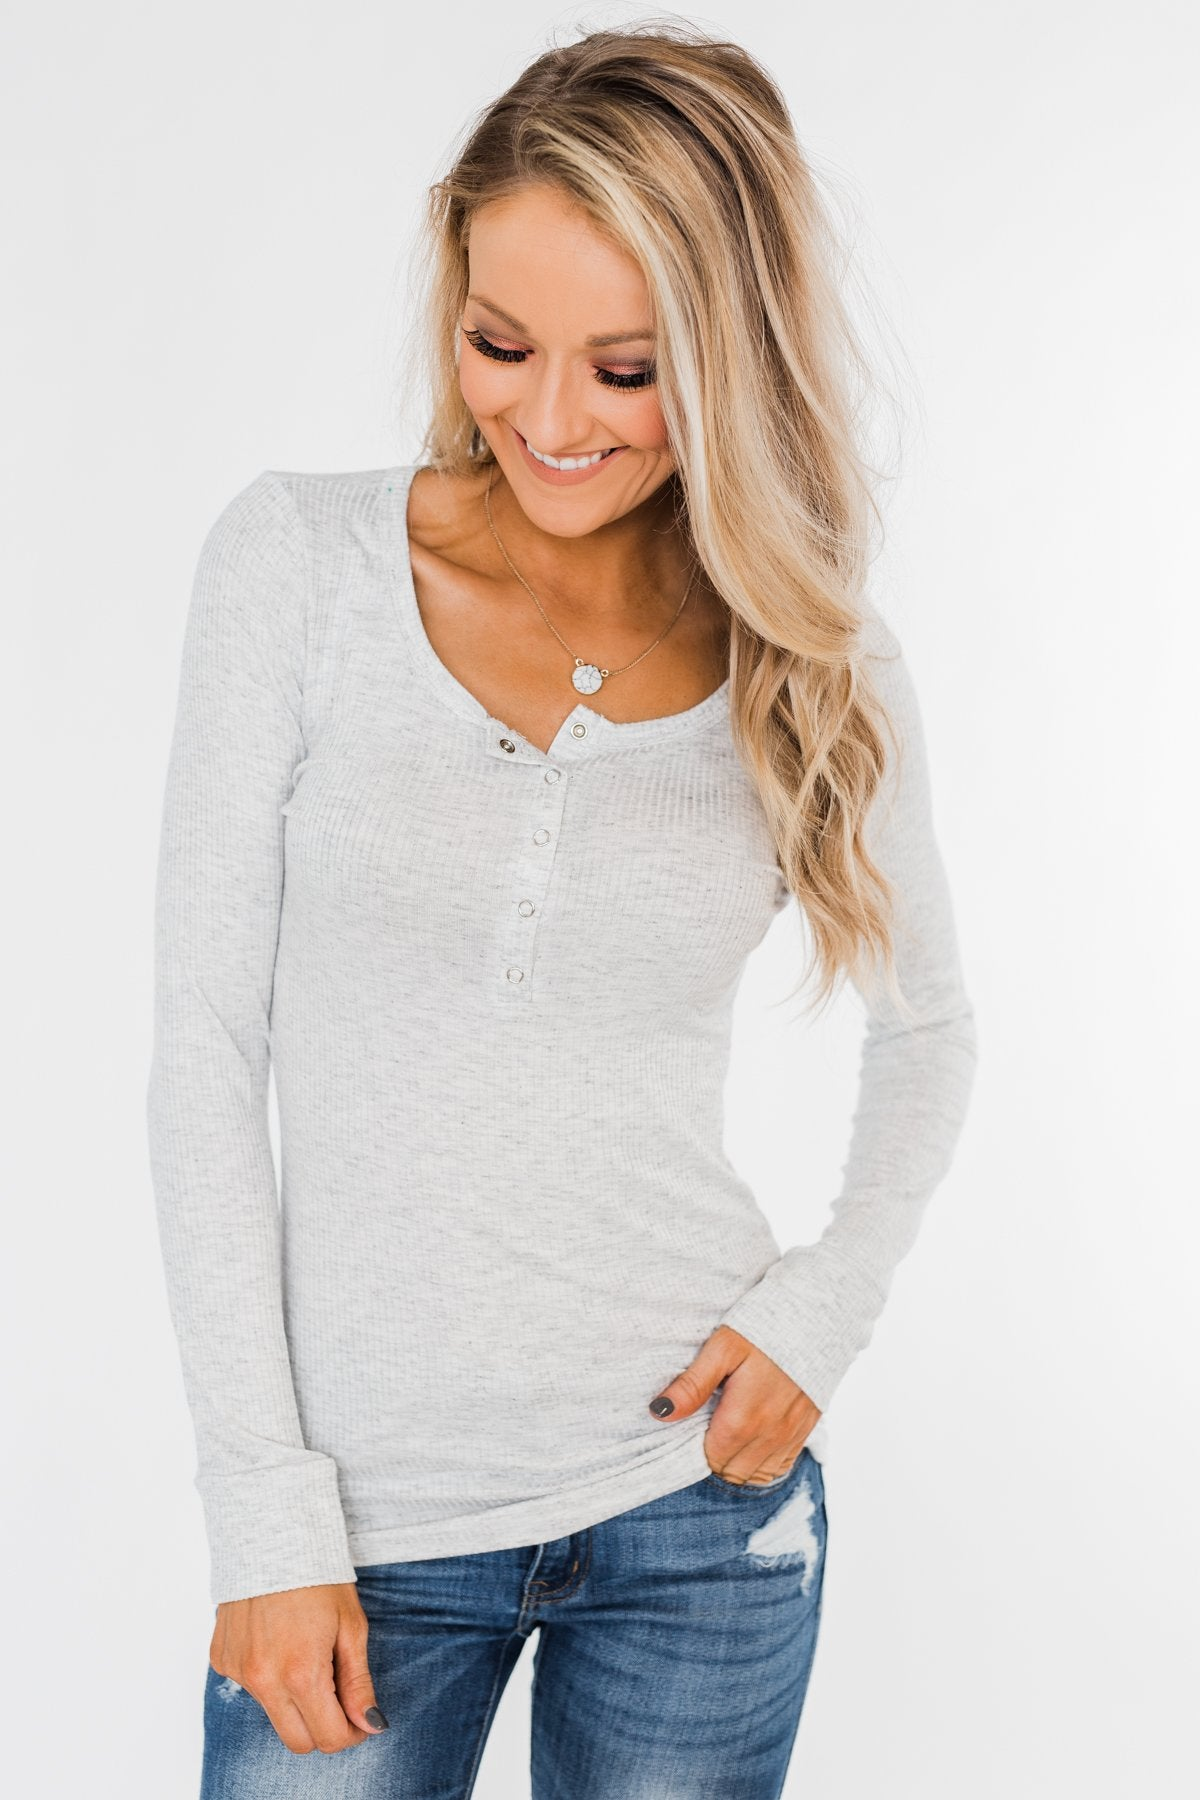 Snap Button Henley Top- Heather Grey